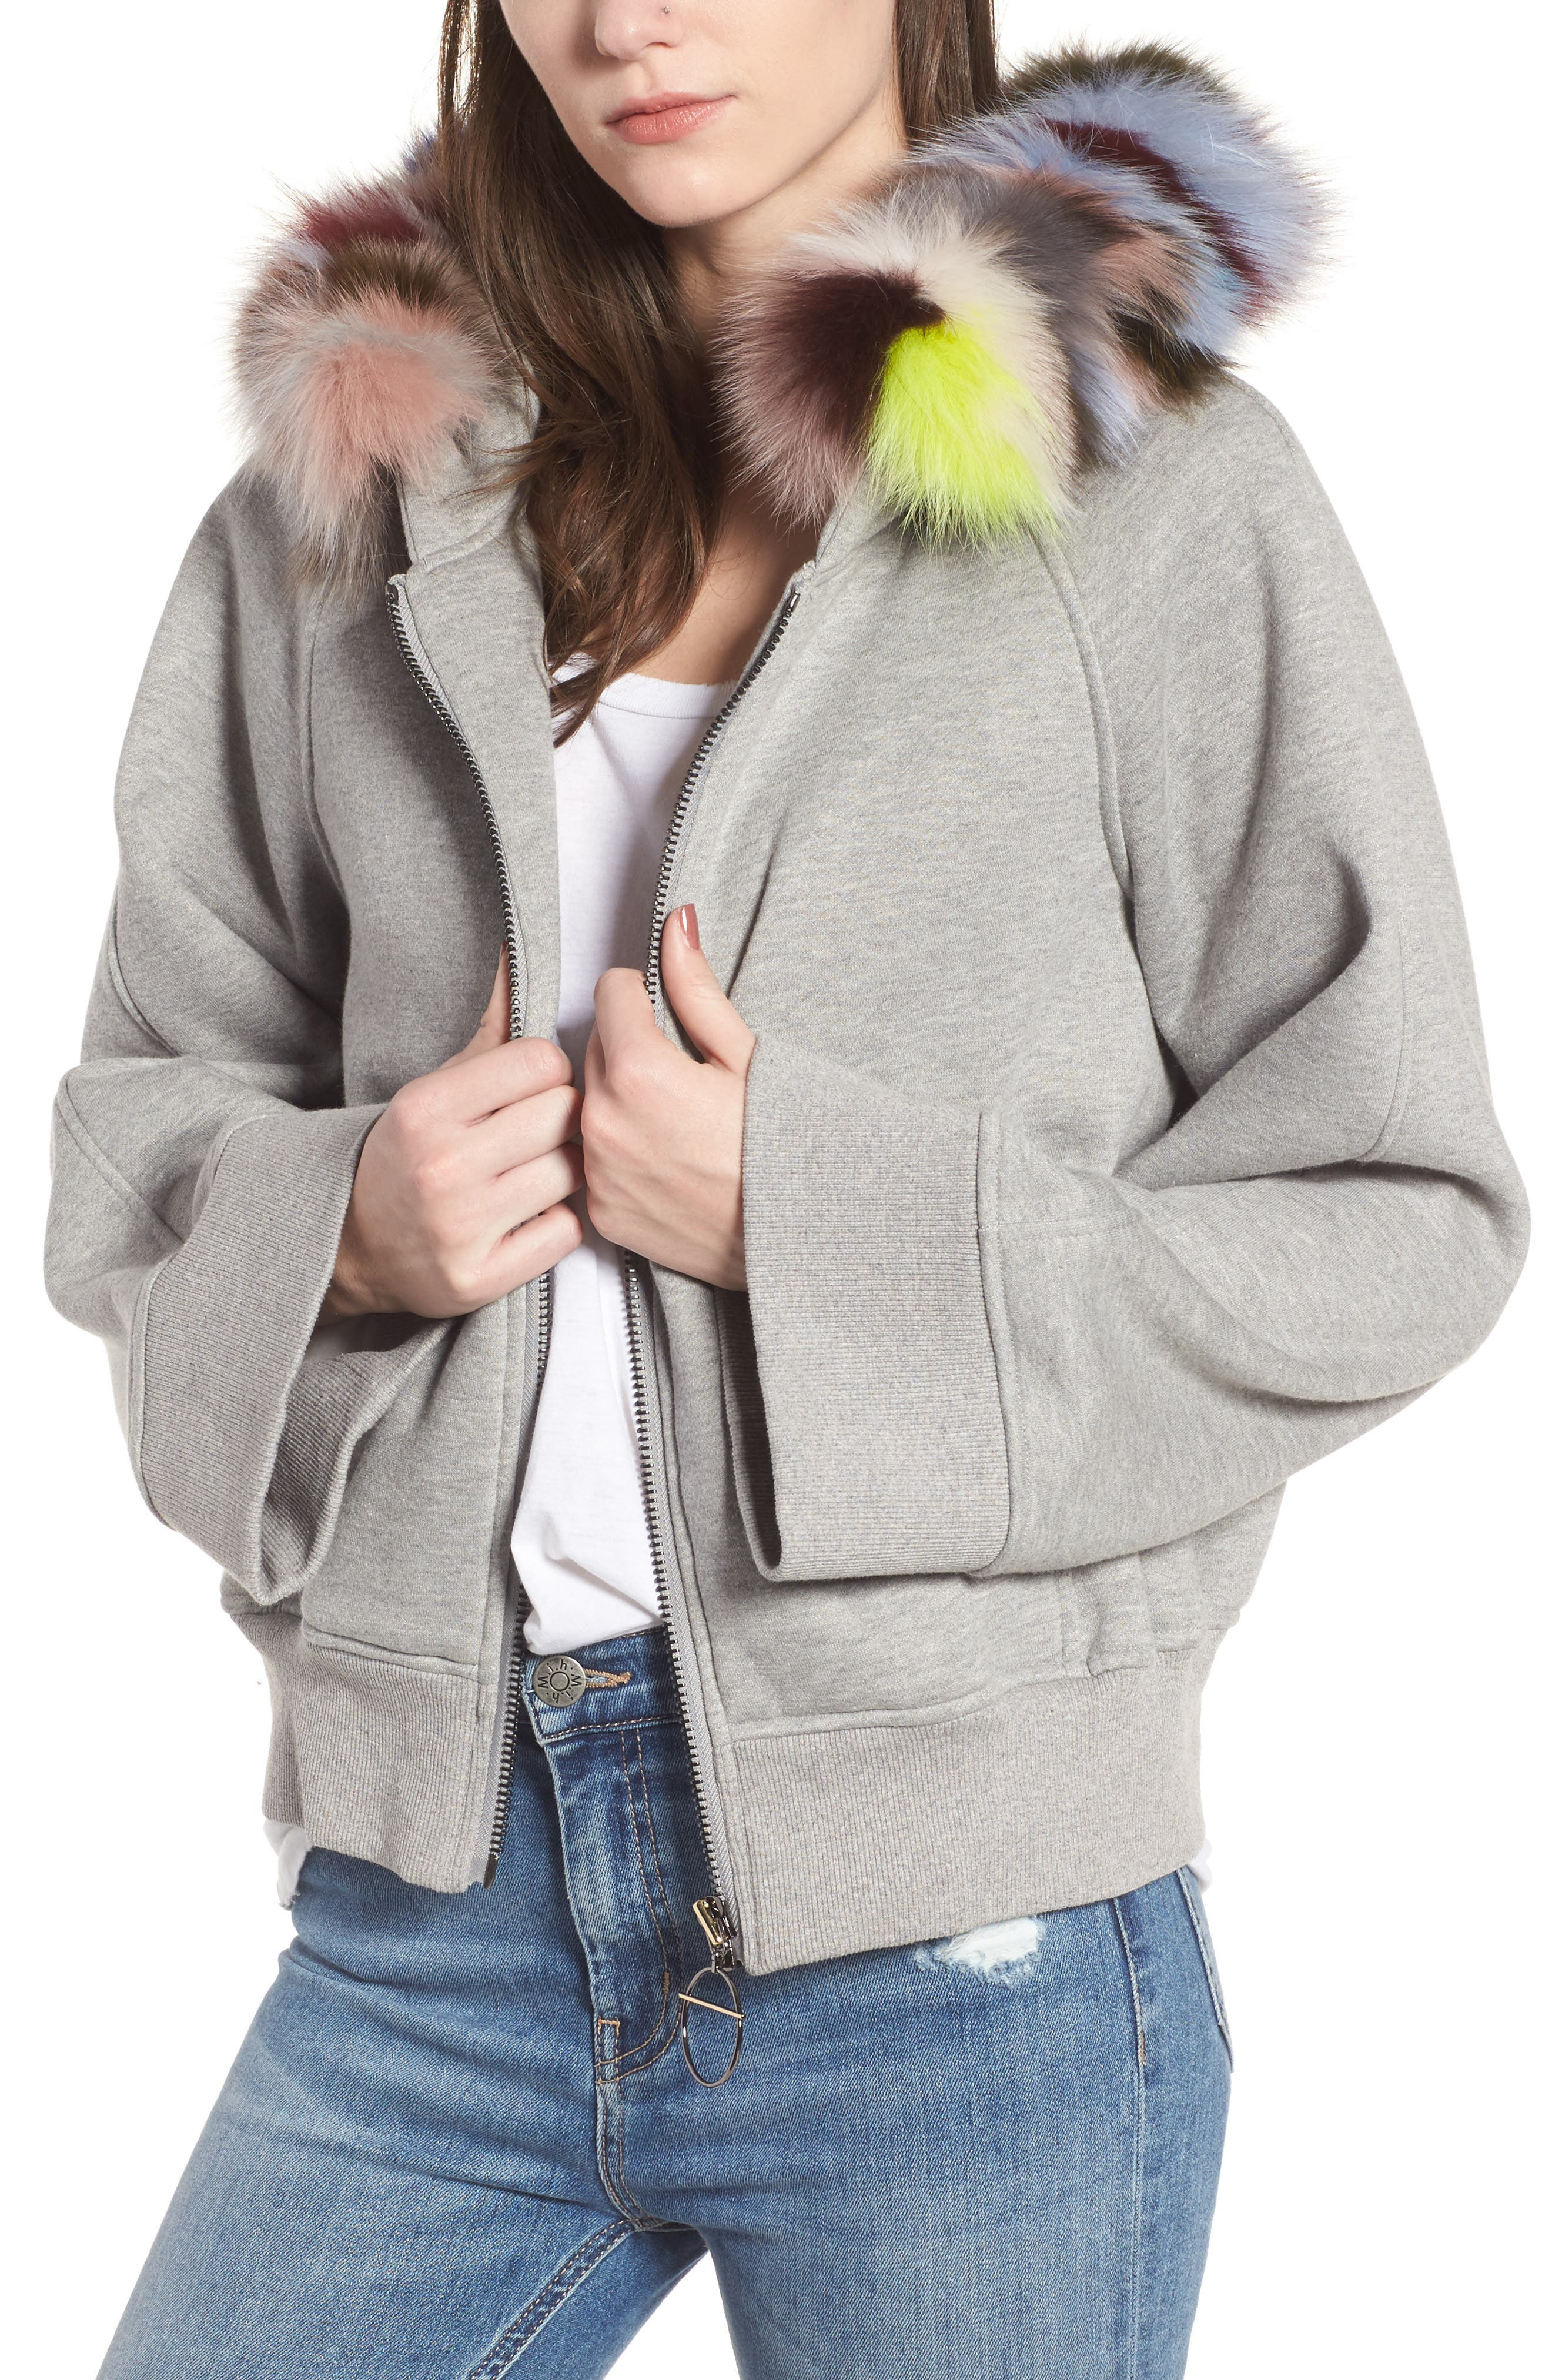 Main Image - BAGATELLE.CITY The Luxe Hooded Jacket with Genuine Fox Fur Trim